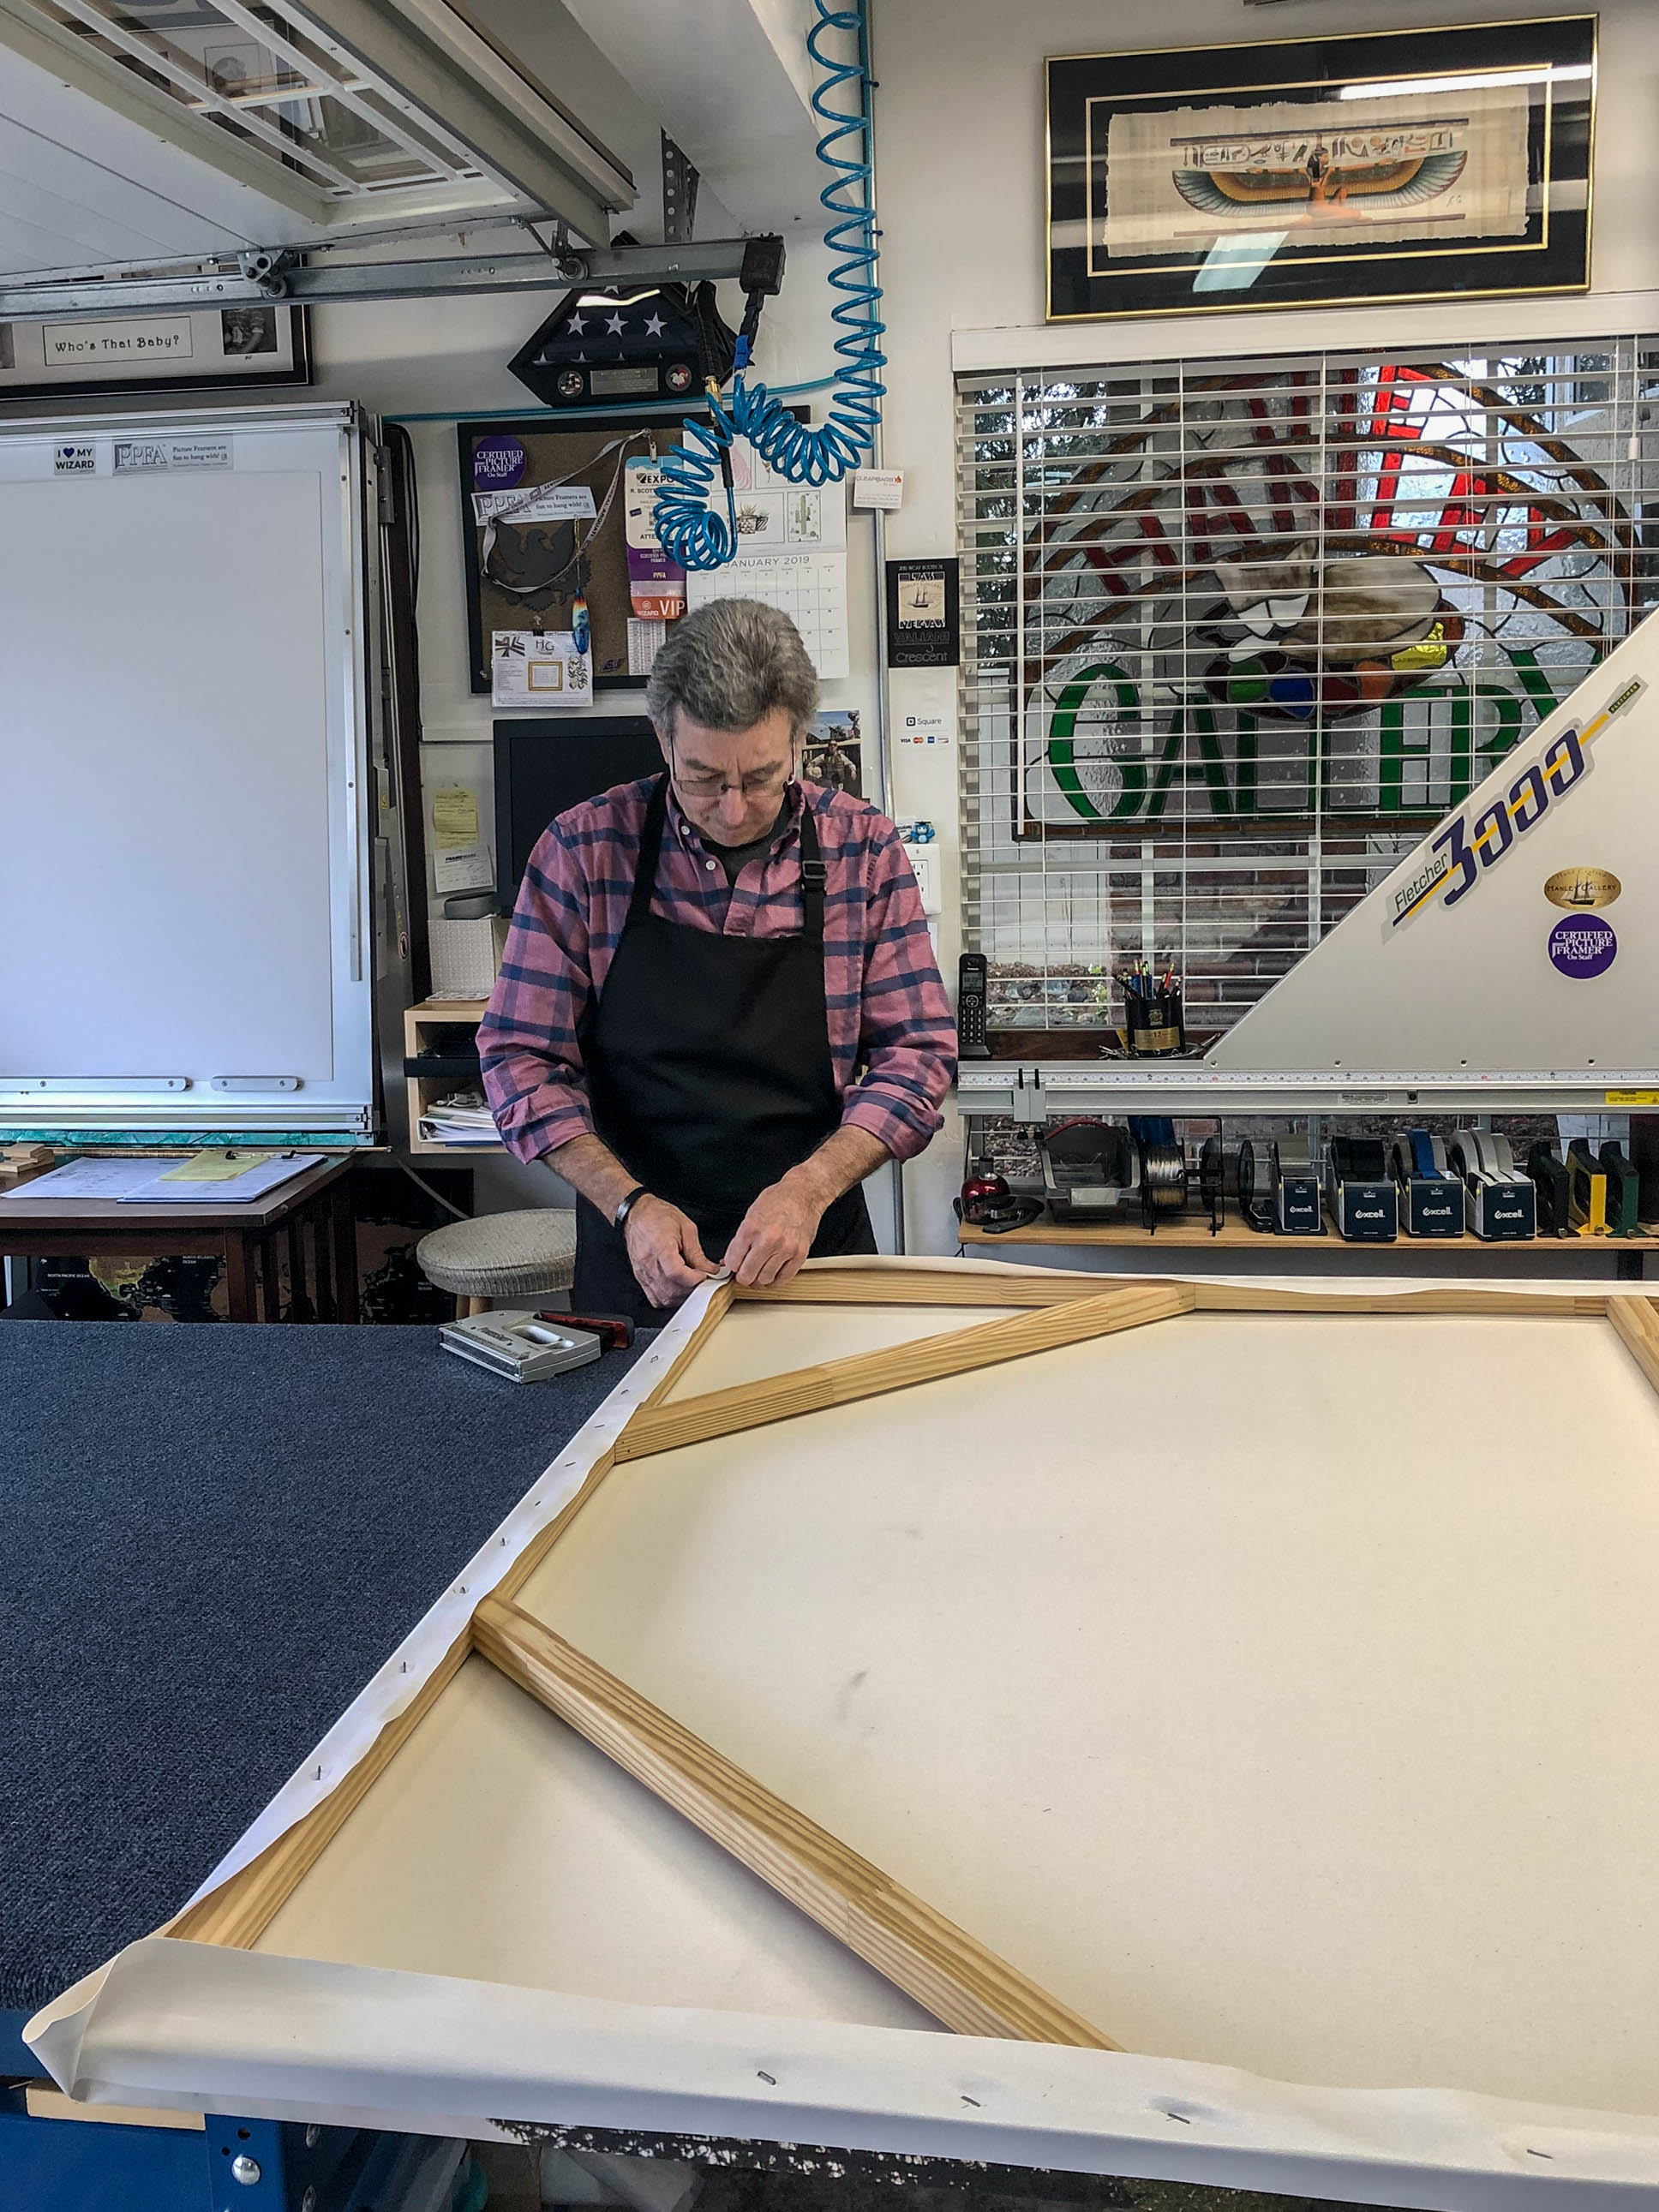 The canvas being attached to the frame.